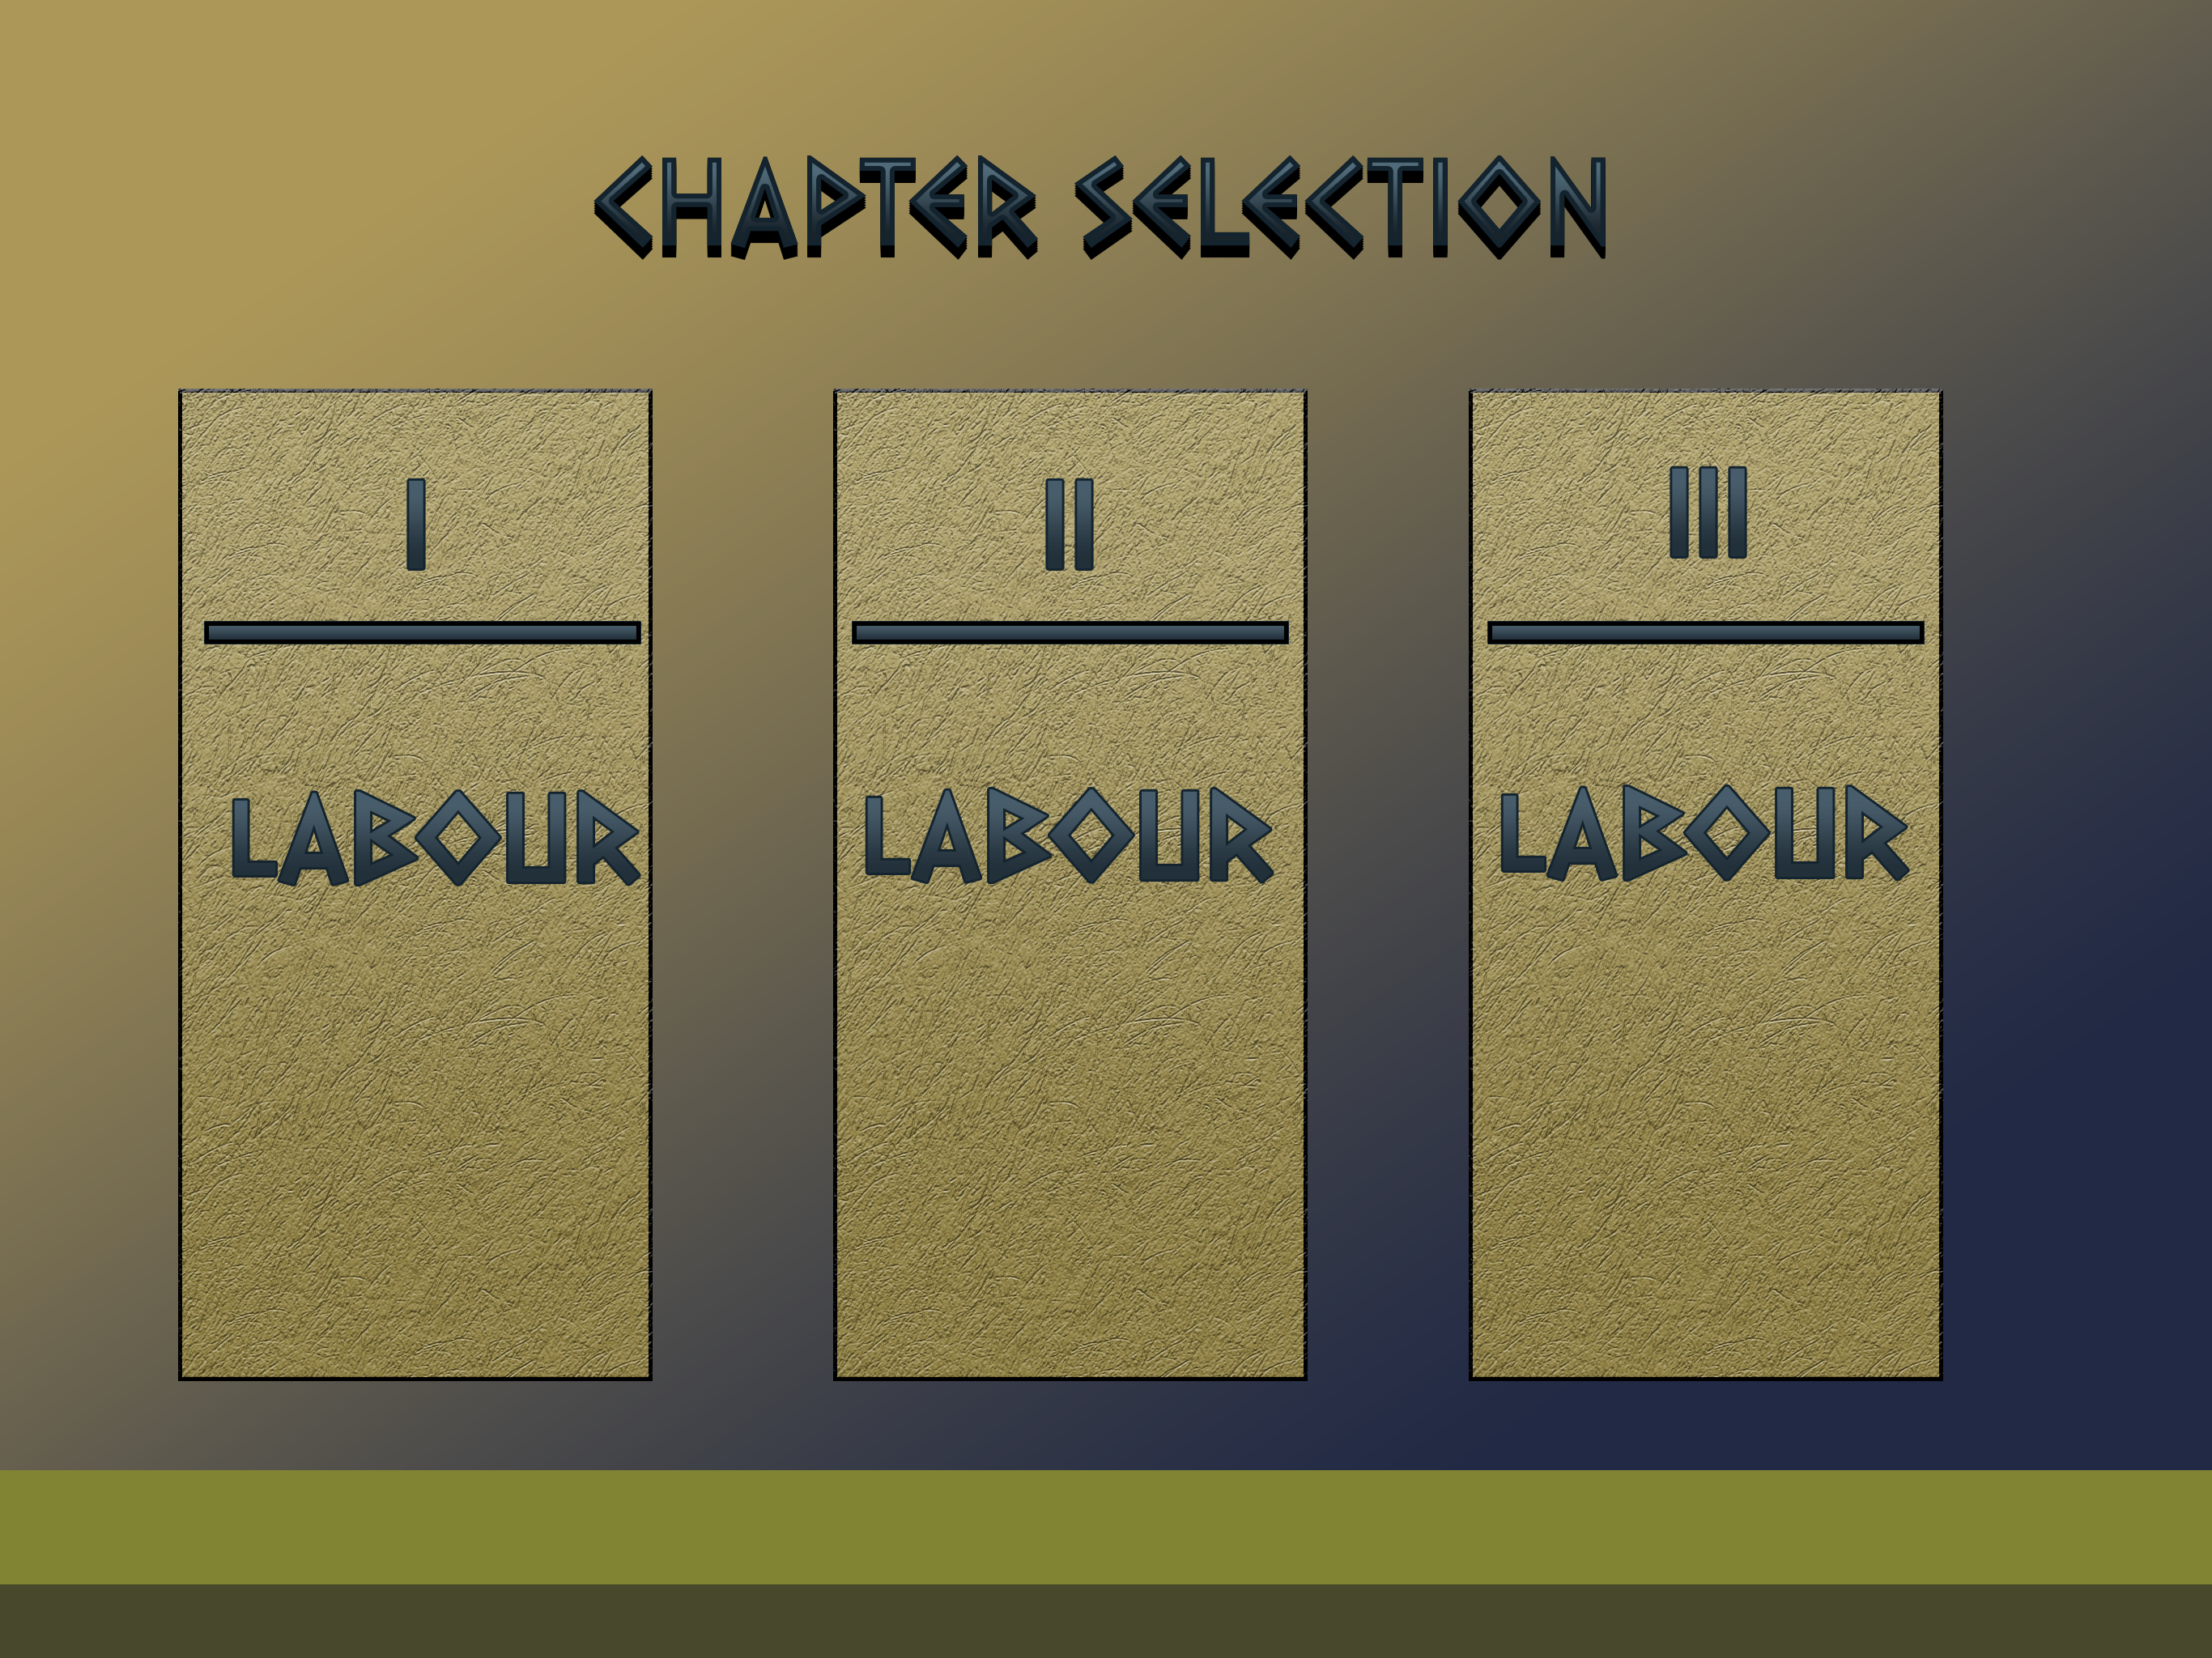 Chapter Selection